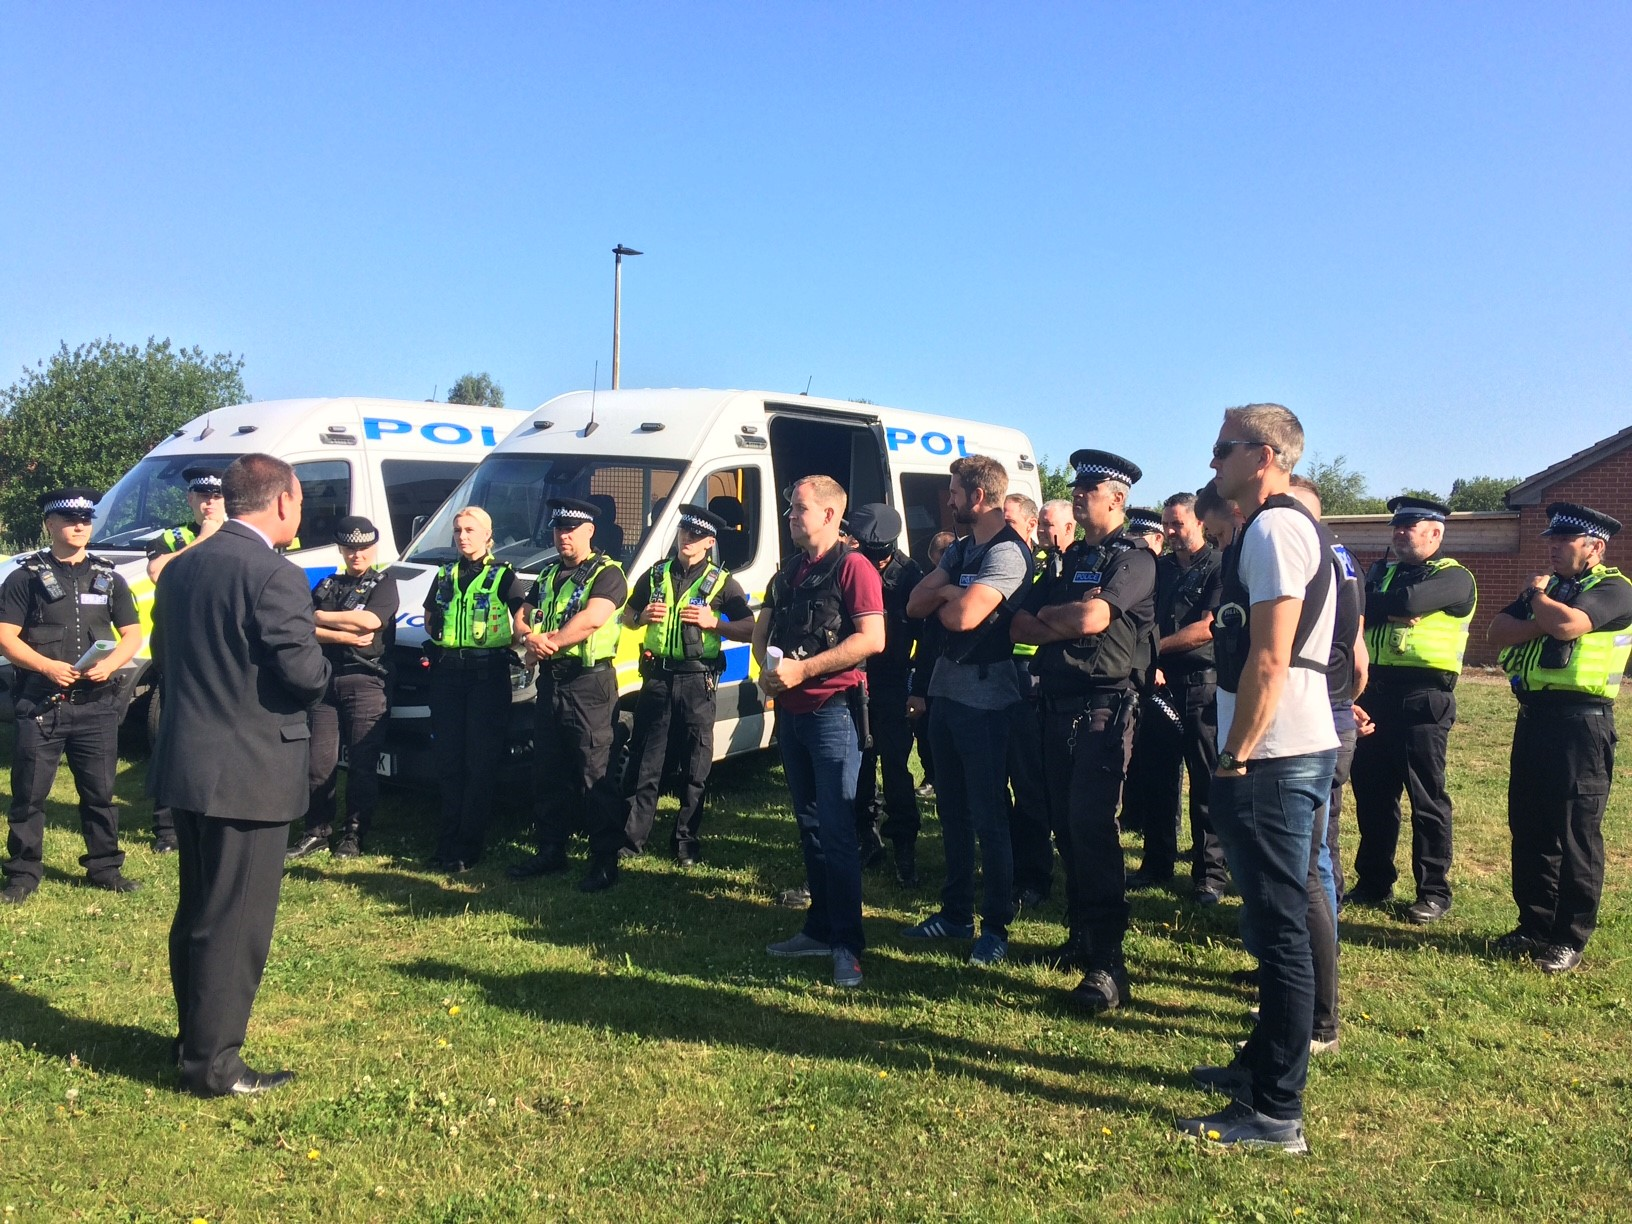 Serious and Violent Crime Task Force briefing at Schofield Park, Mexborough